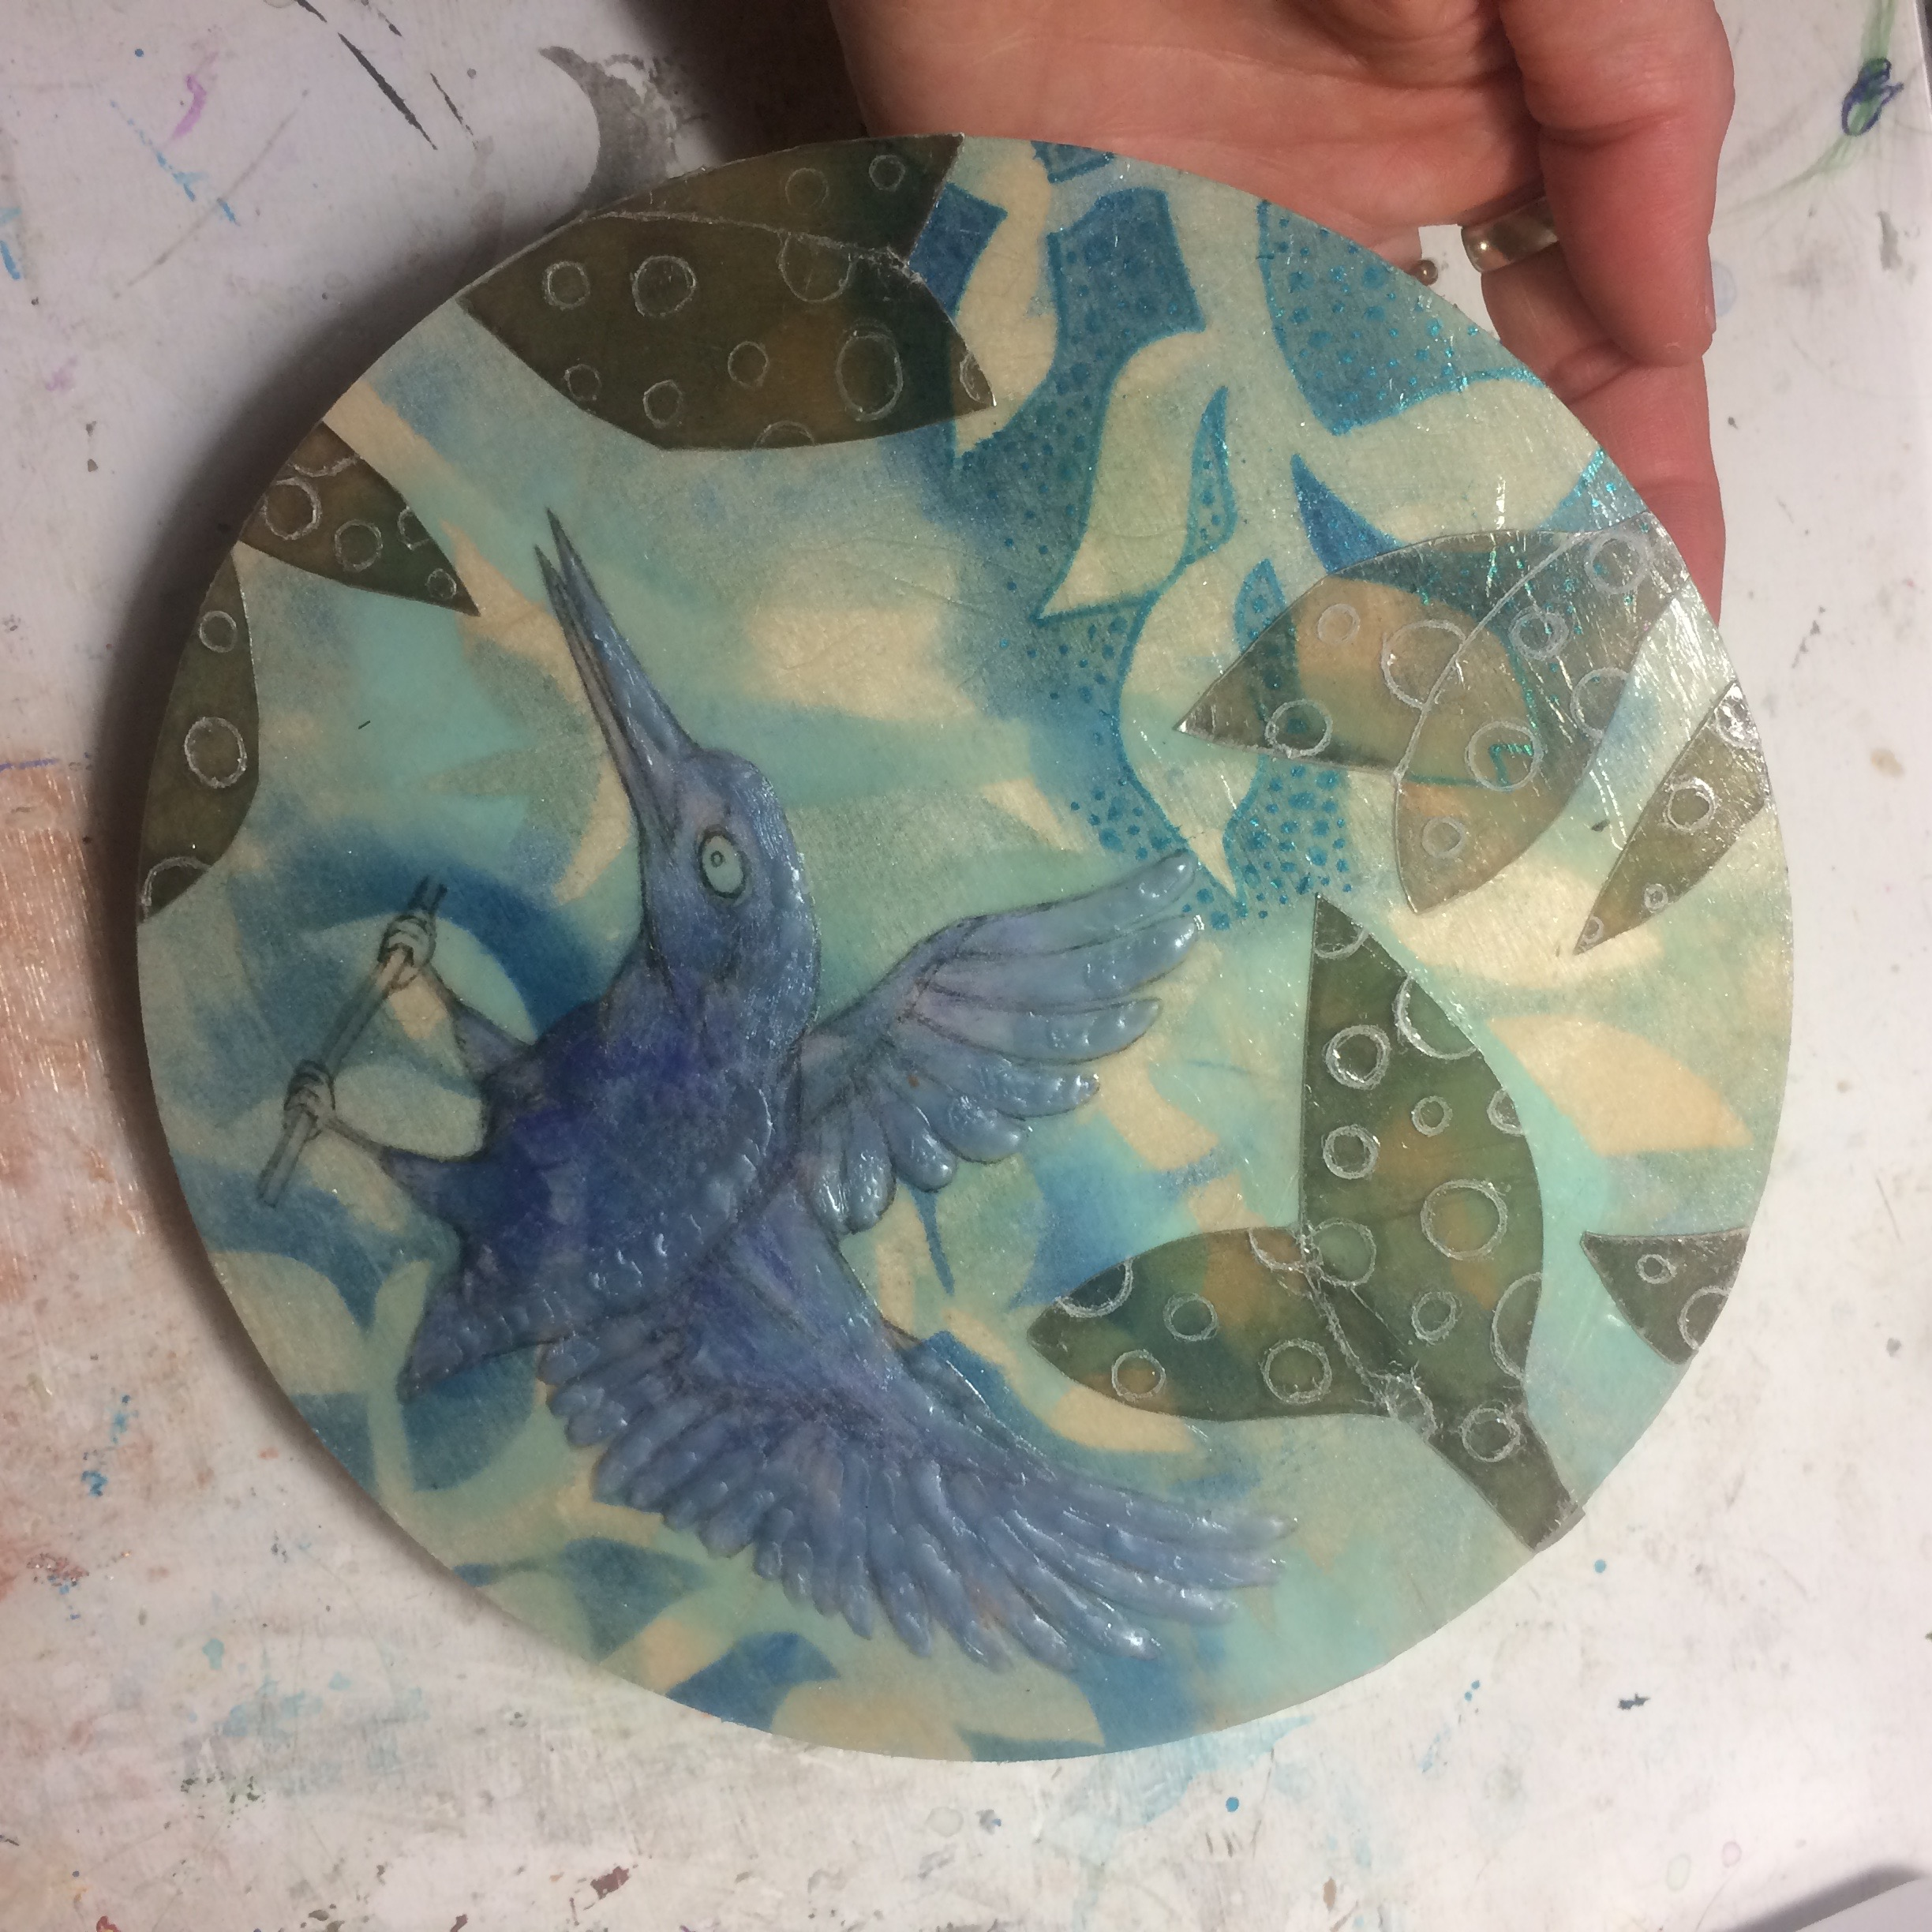 (K) Etched circles into mica, wax texture and pan pastels onto bird.